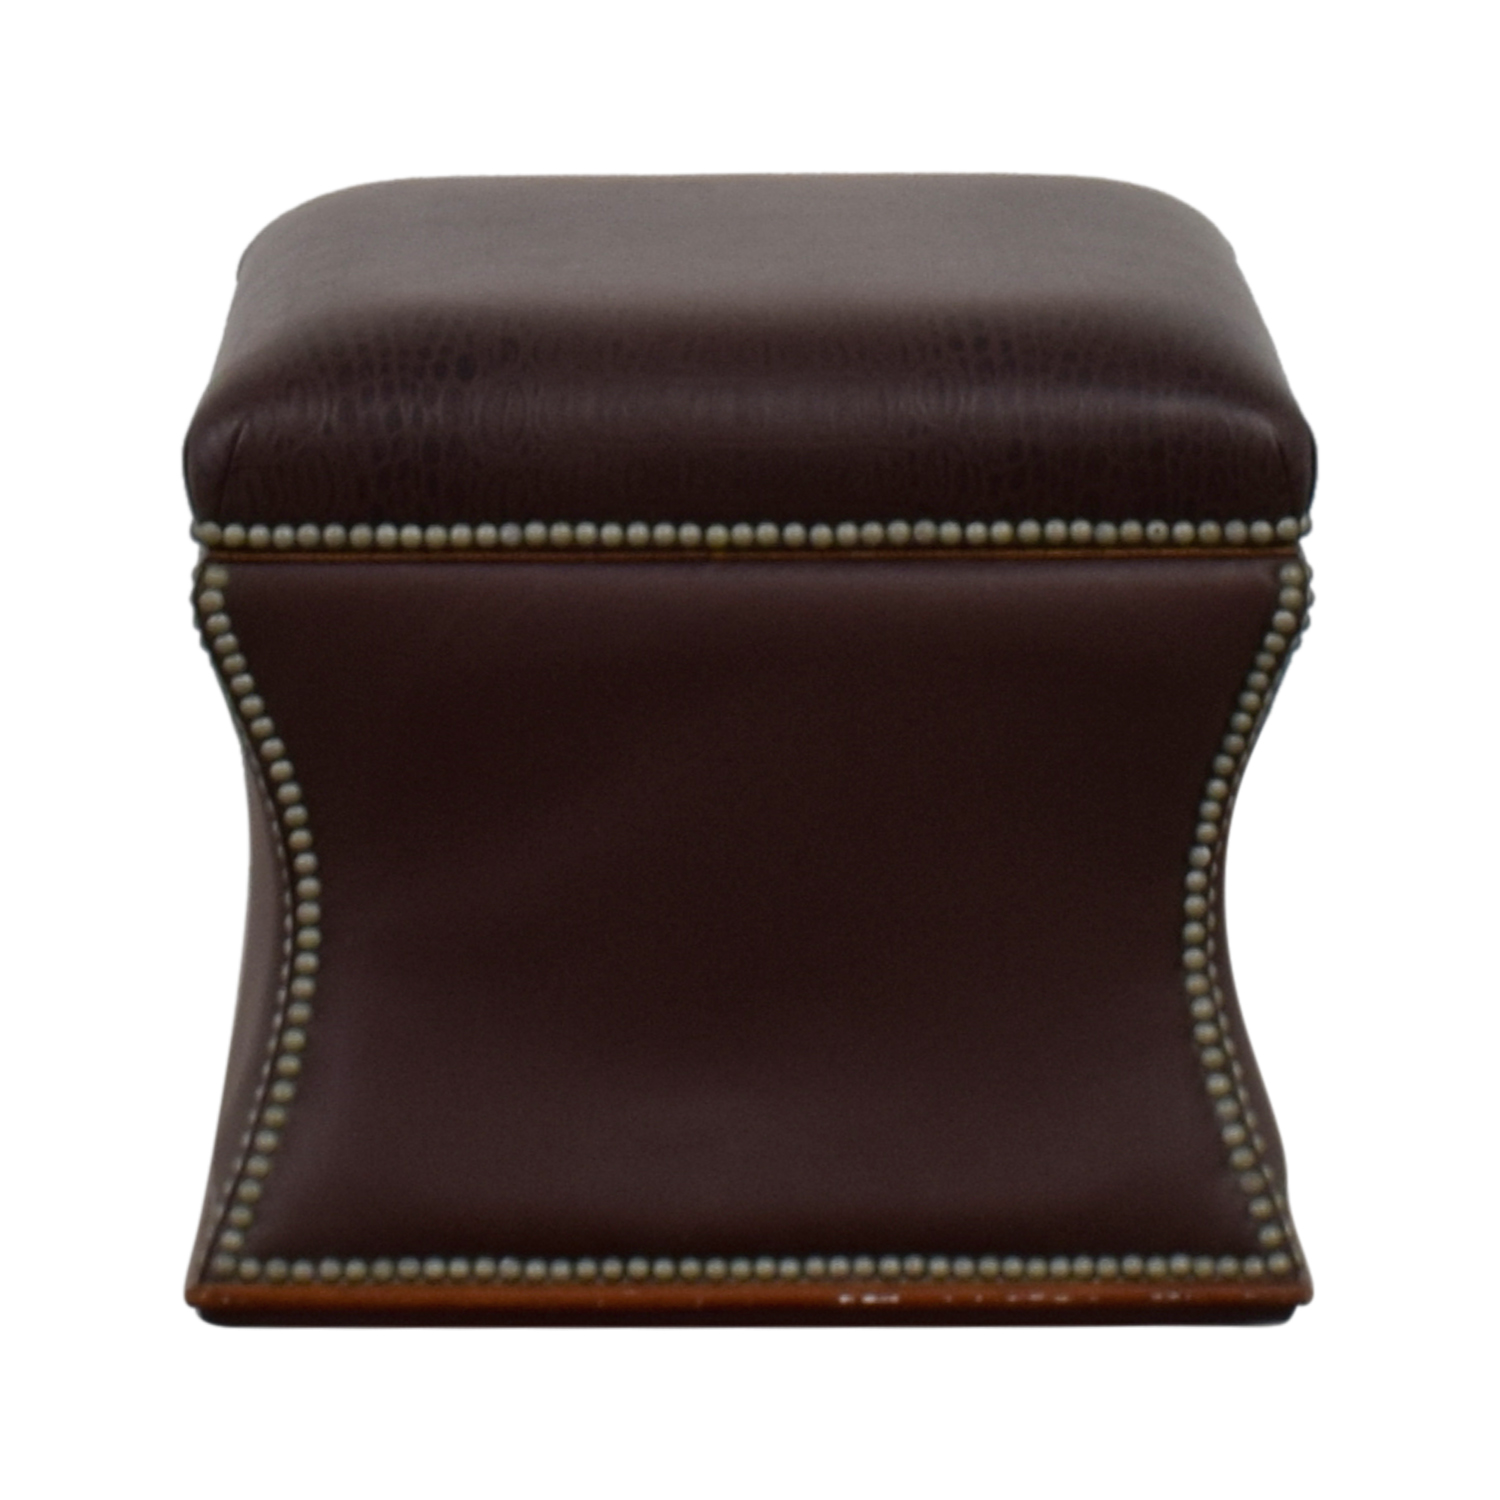 Awe Inspiring 89 Off Ralph Lauren Home Ralph Lauren Nailhead Faux Crocodile Embossed Leather Storage Ottoman Chairs Ncnpc Chair Design For Home Ncnpcorg